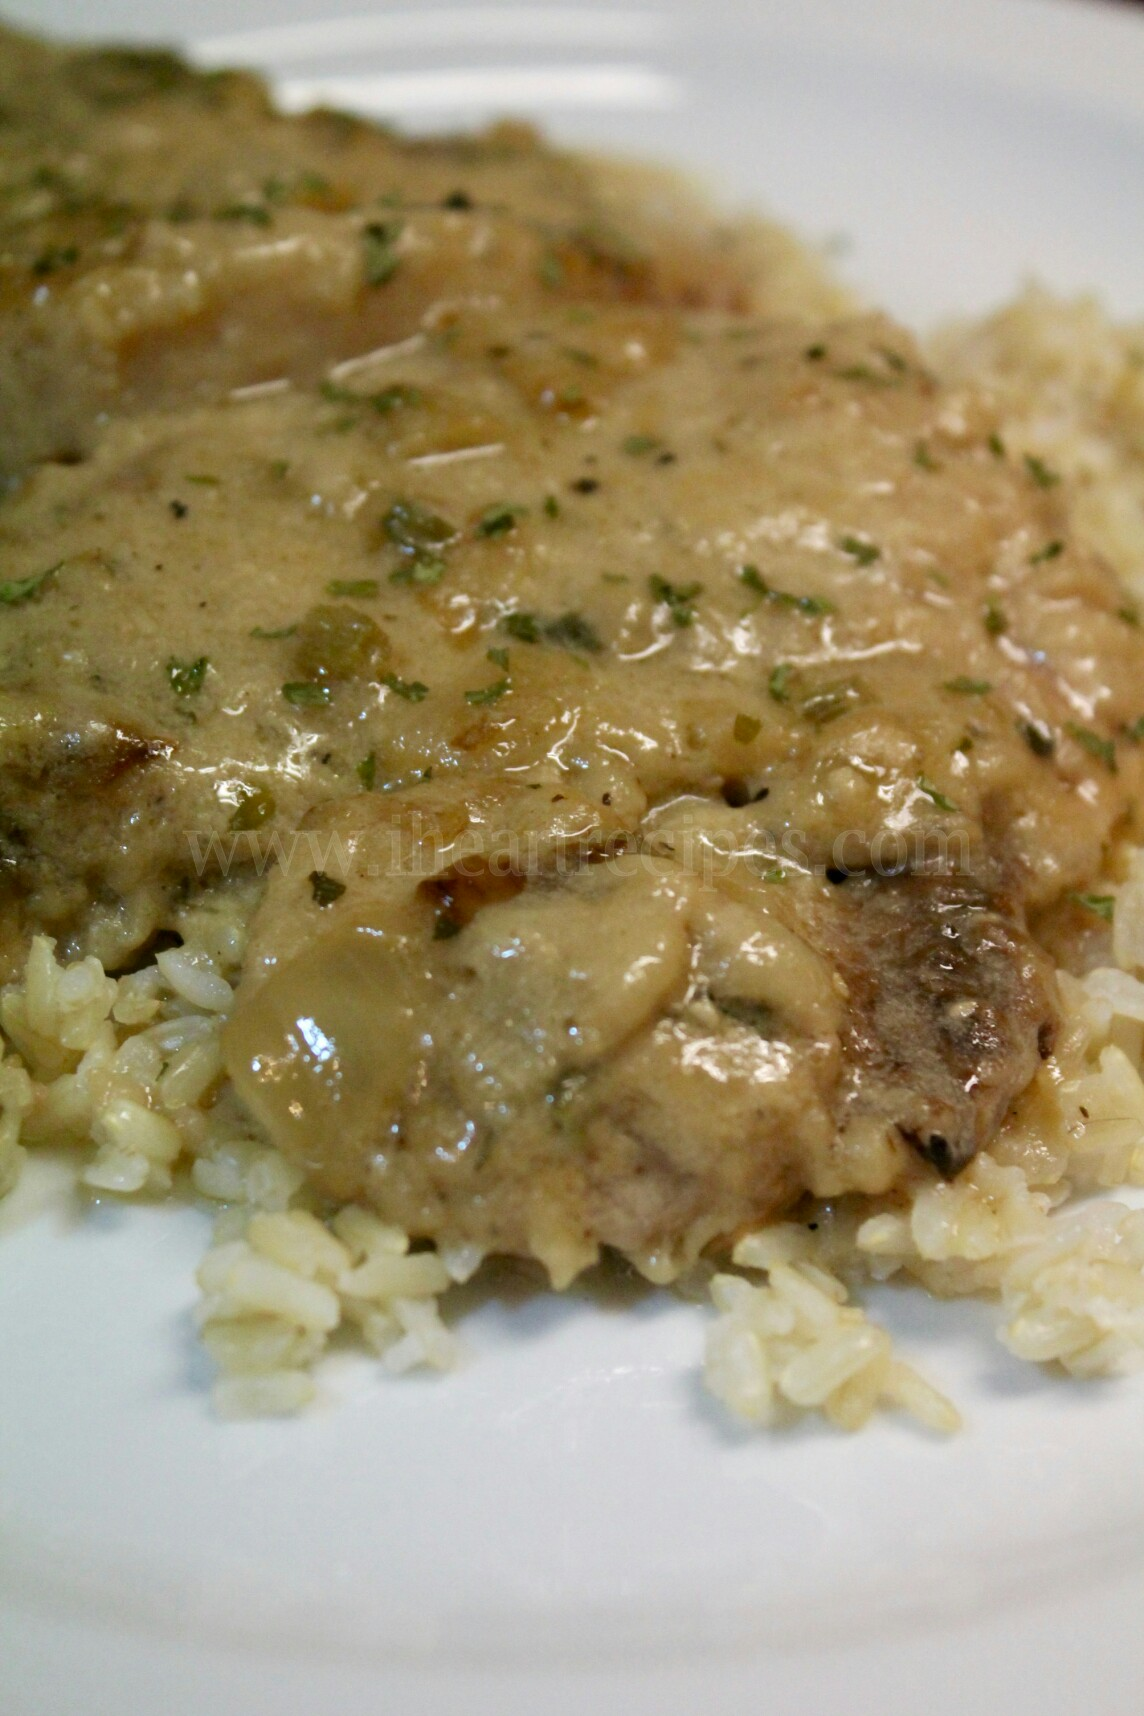 You can serve these amazing smothered pork chops with creamy gravy on a bed of rice with a side of greens!